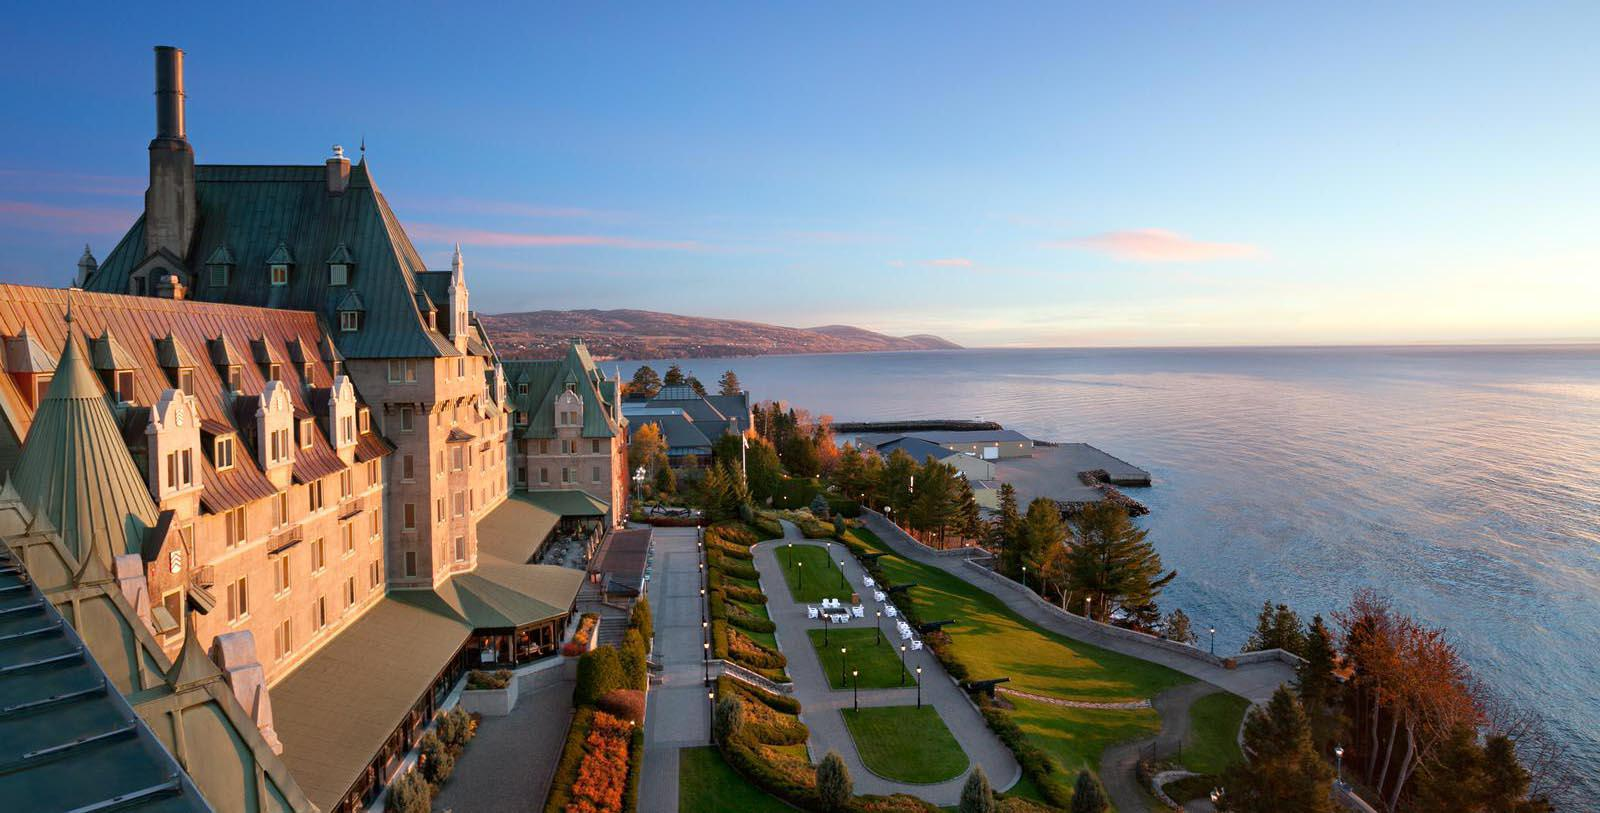 Image of exterior of the Fairmont Le Château Montebello in Quebec, Canada.